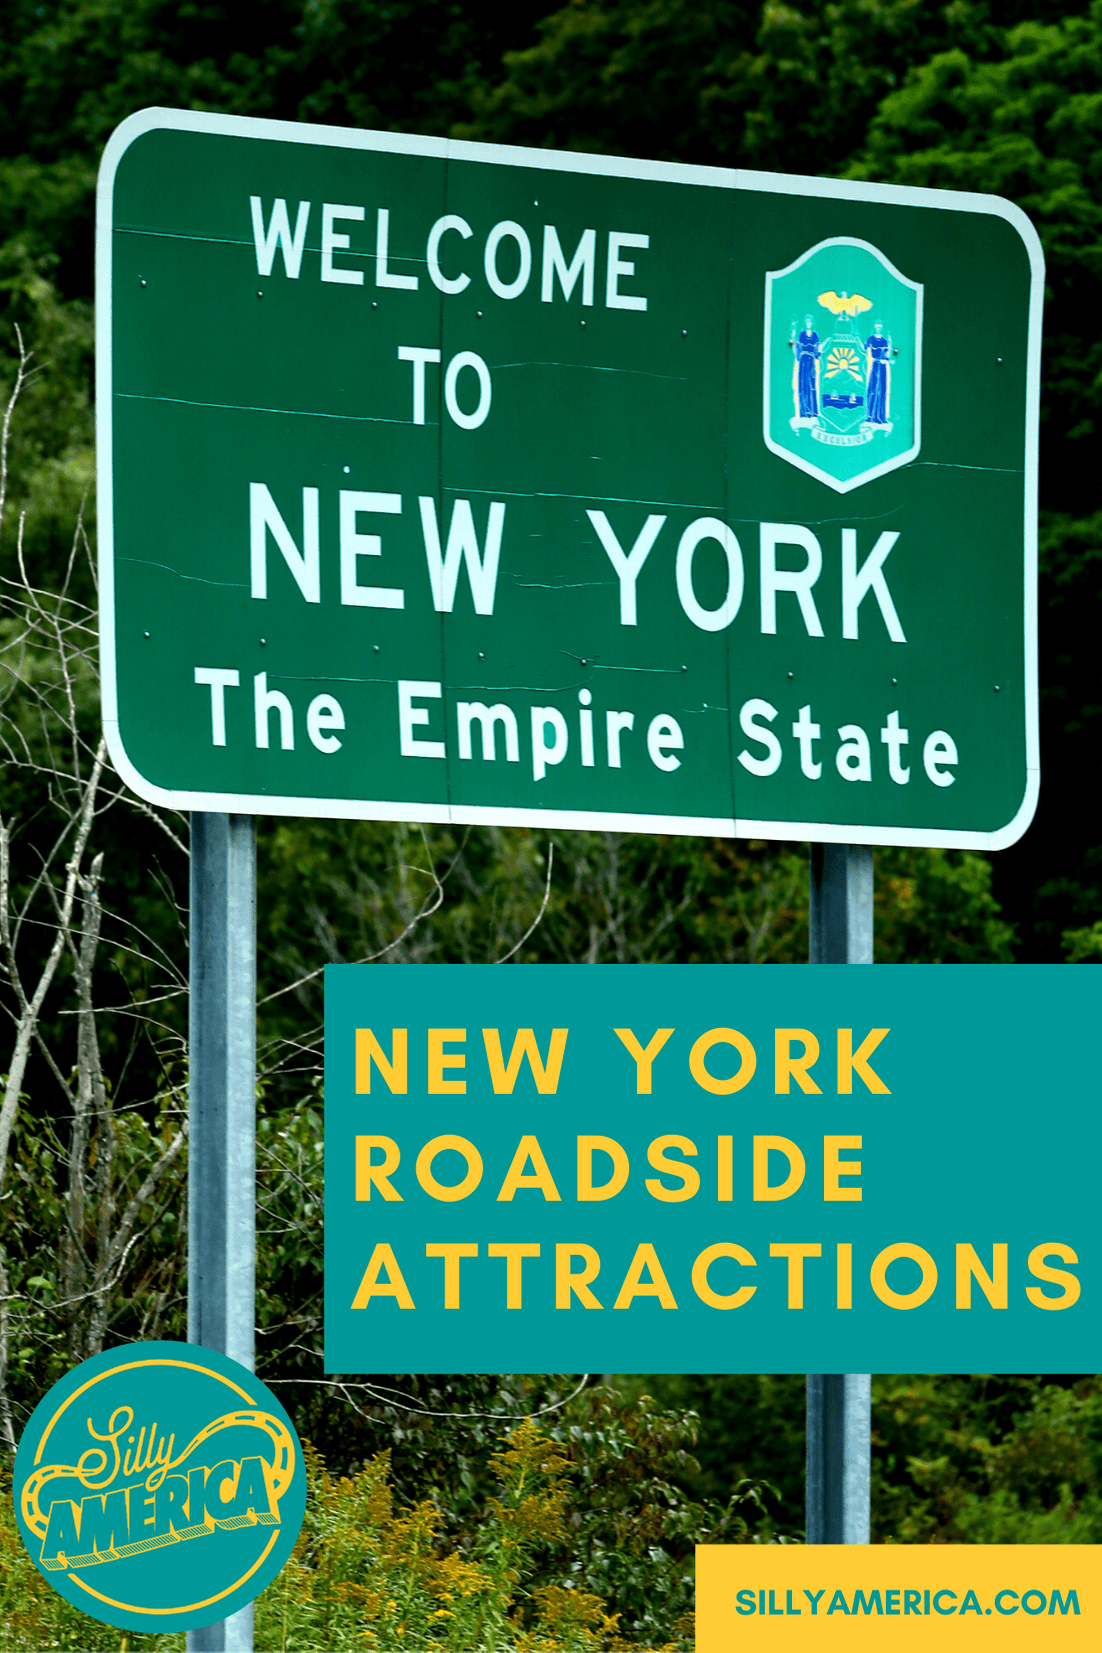 The best New York roadside attractions to visit on a New York road trip. Add these roadside oddities to your travel bucket list, itinerary, or route map! Visit these weird roadside attractions on a New York state road trip with kids or adults. #NewYorkRoadsideAttractions #NewYorkRoadsideAttraction #RoadsideAttractions #RoadsideAttraction #RoadTrip #NewYorkRoadTrip #NewYorkRoadTripBucketLists #NewYorkBucketLists #UpstateNewYorkRoadTrip #ThingsToDoInNewYork #NewYorkRoadTripWithKids